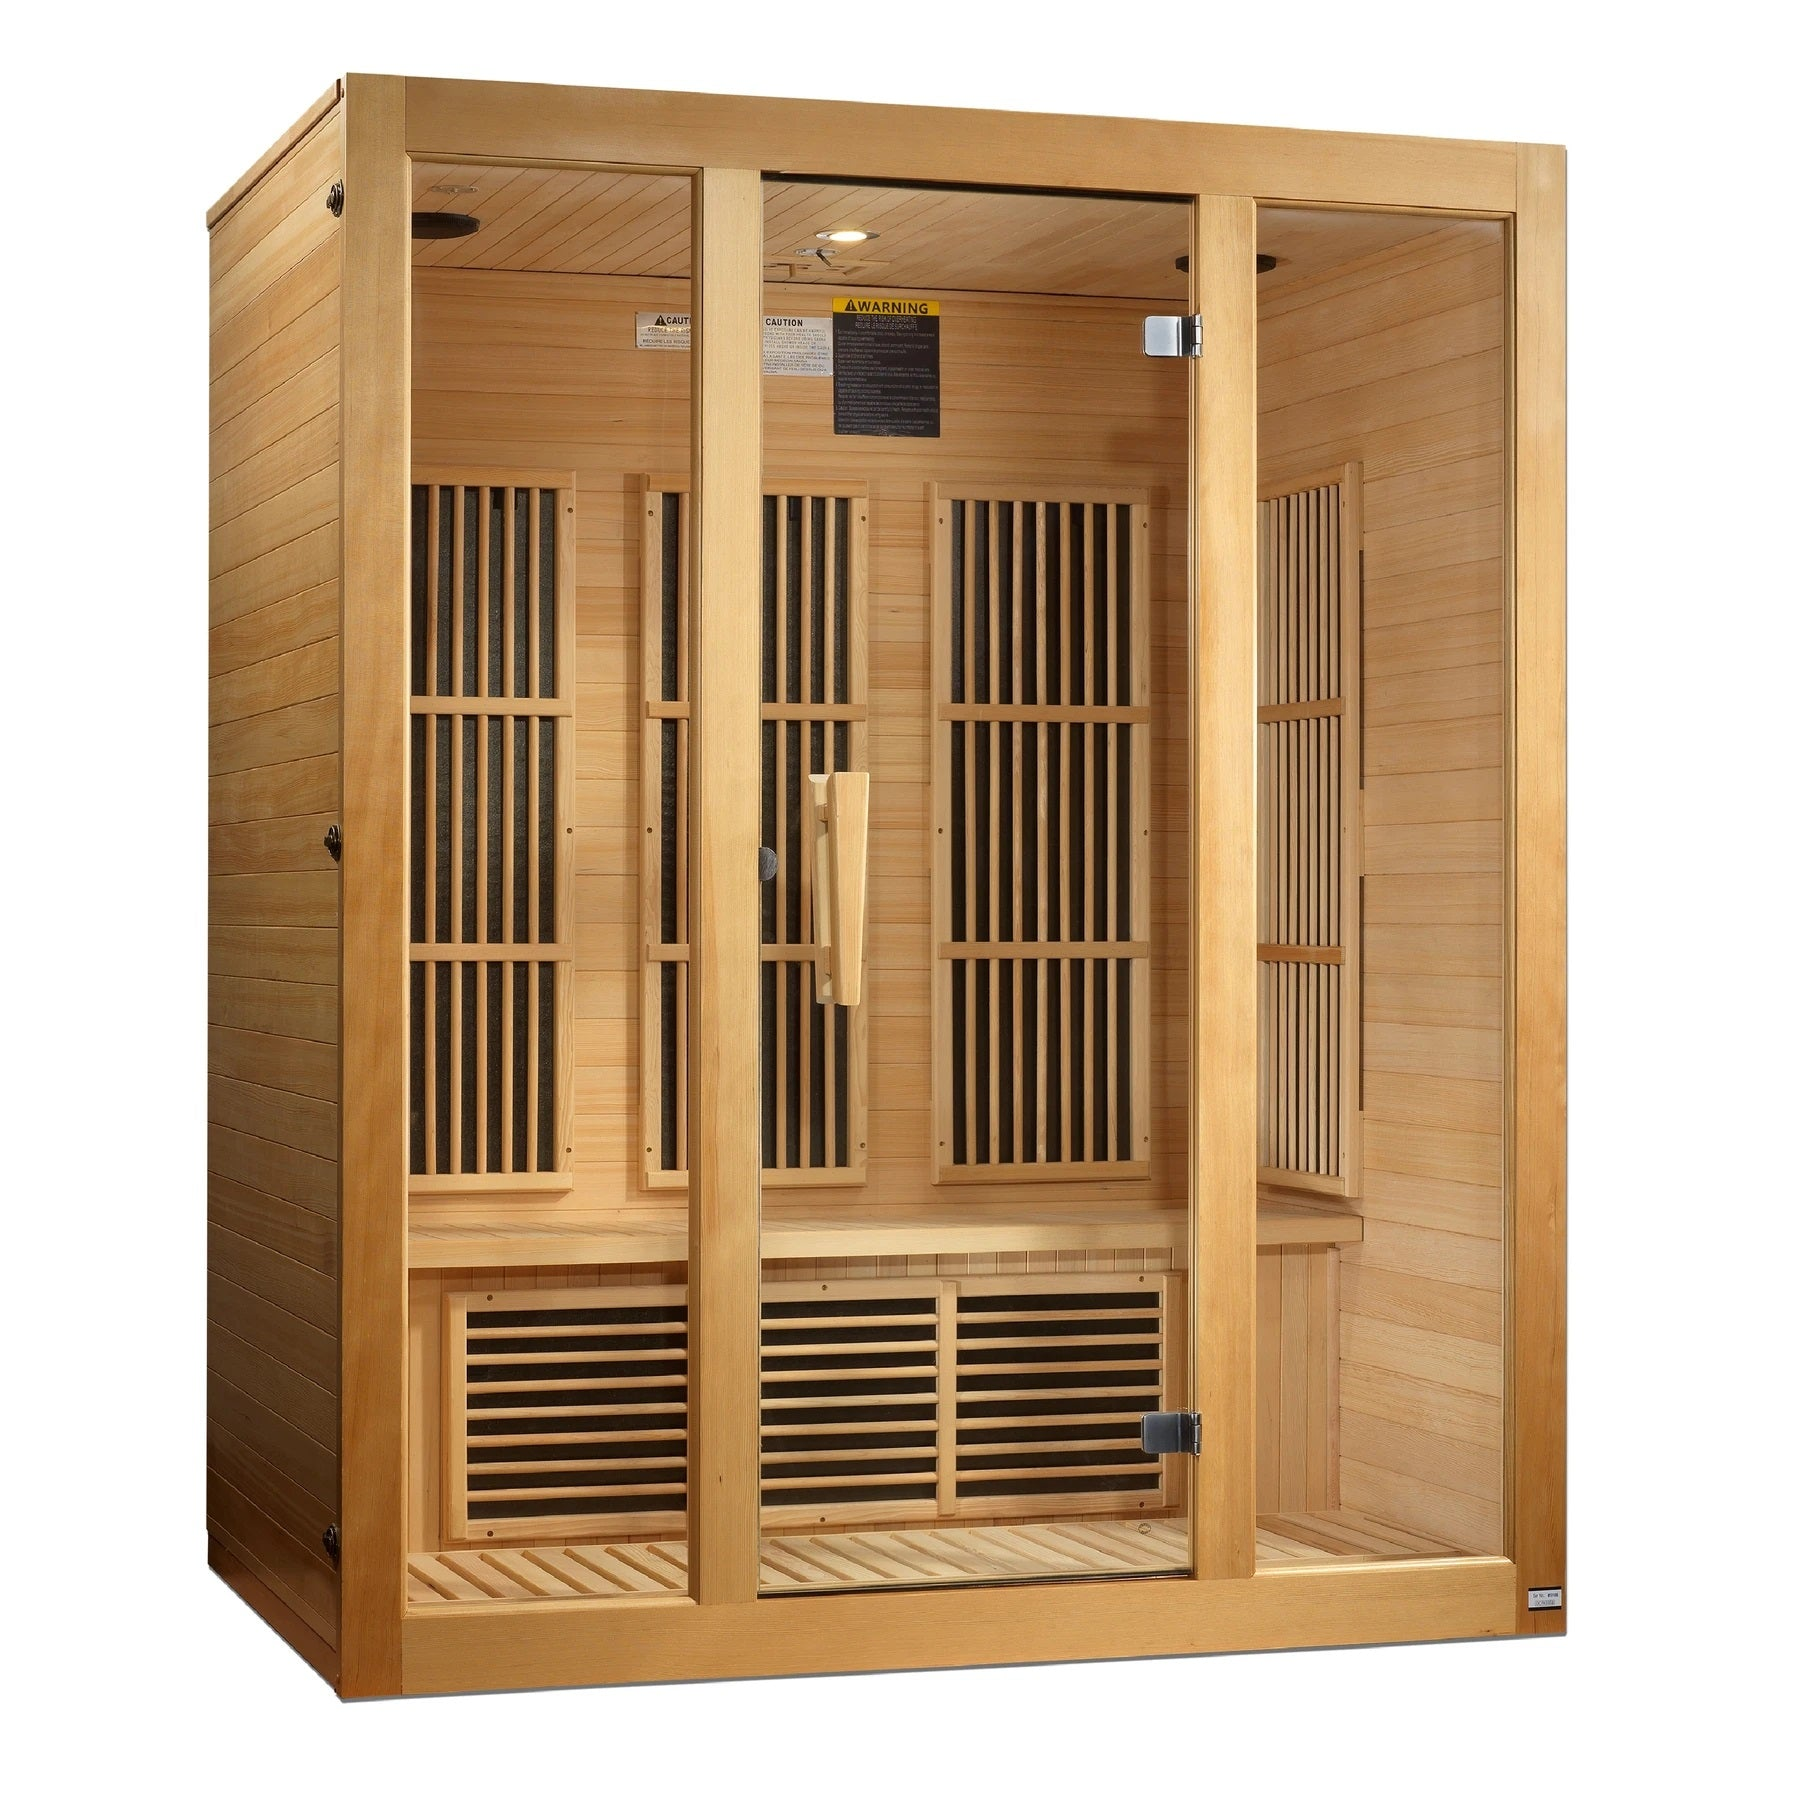 3 person  Infrared Sauna In Stock 1/19 (pickup)